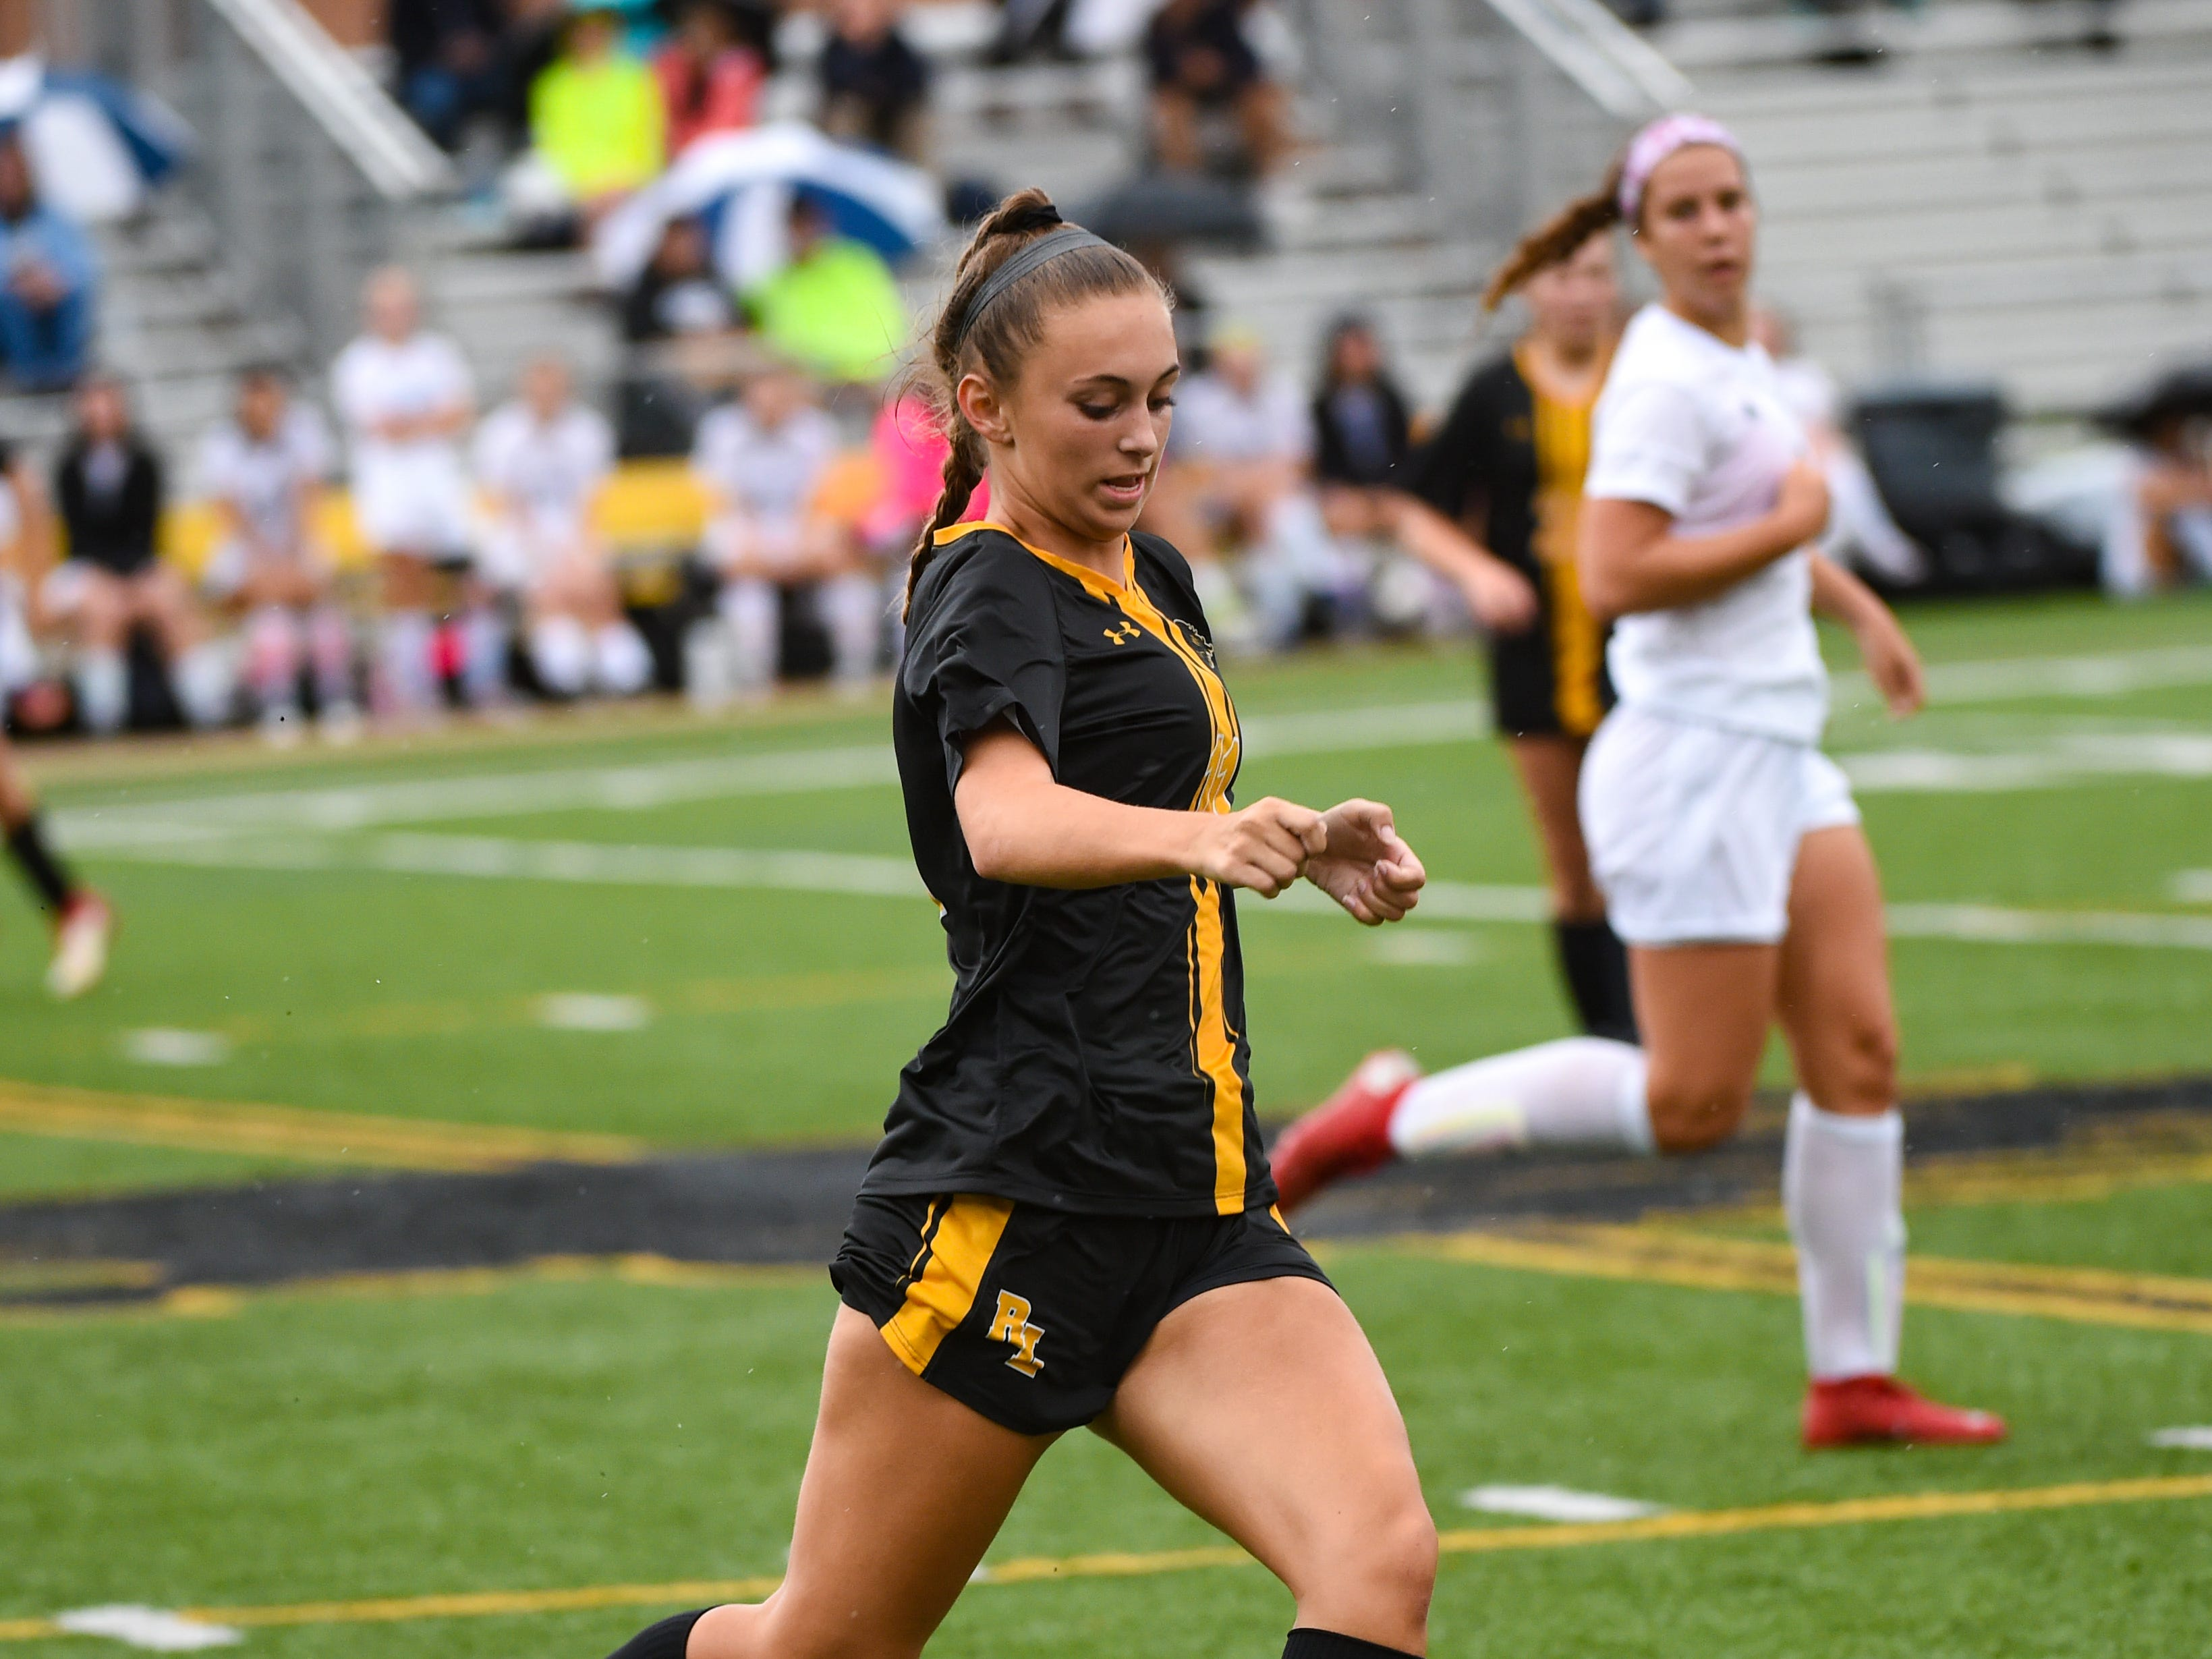 Red Lion's Caroline Frey (11) runs the ball up the sideline during the girls soccer game between Red Lion and Dallastown, October 11, 2018. The Lady Lions beat the Wildcats 4-0.